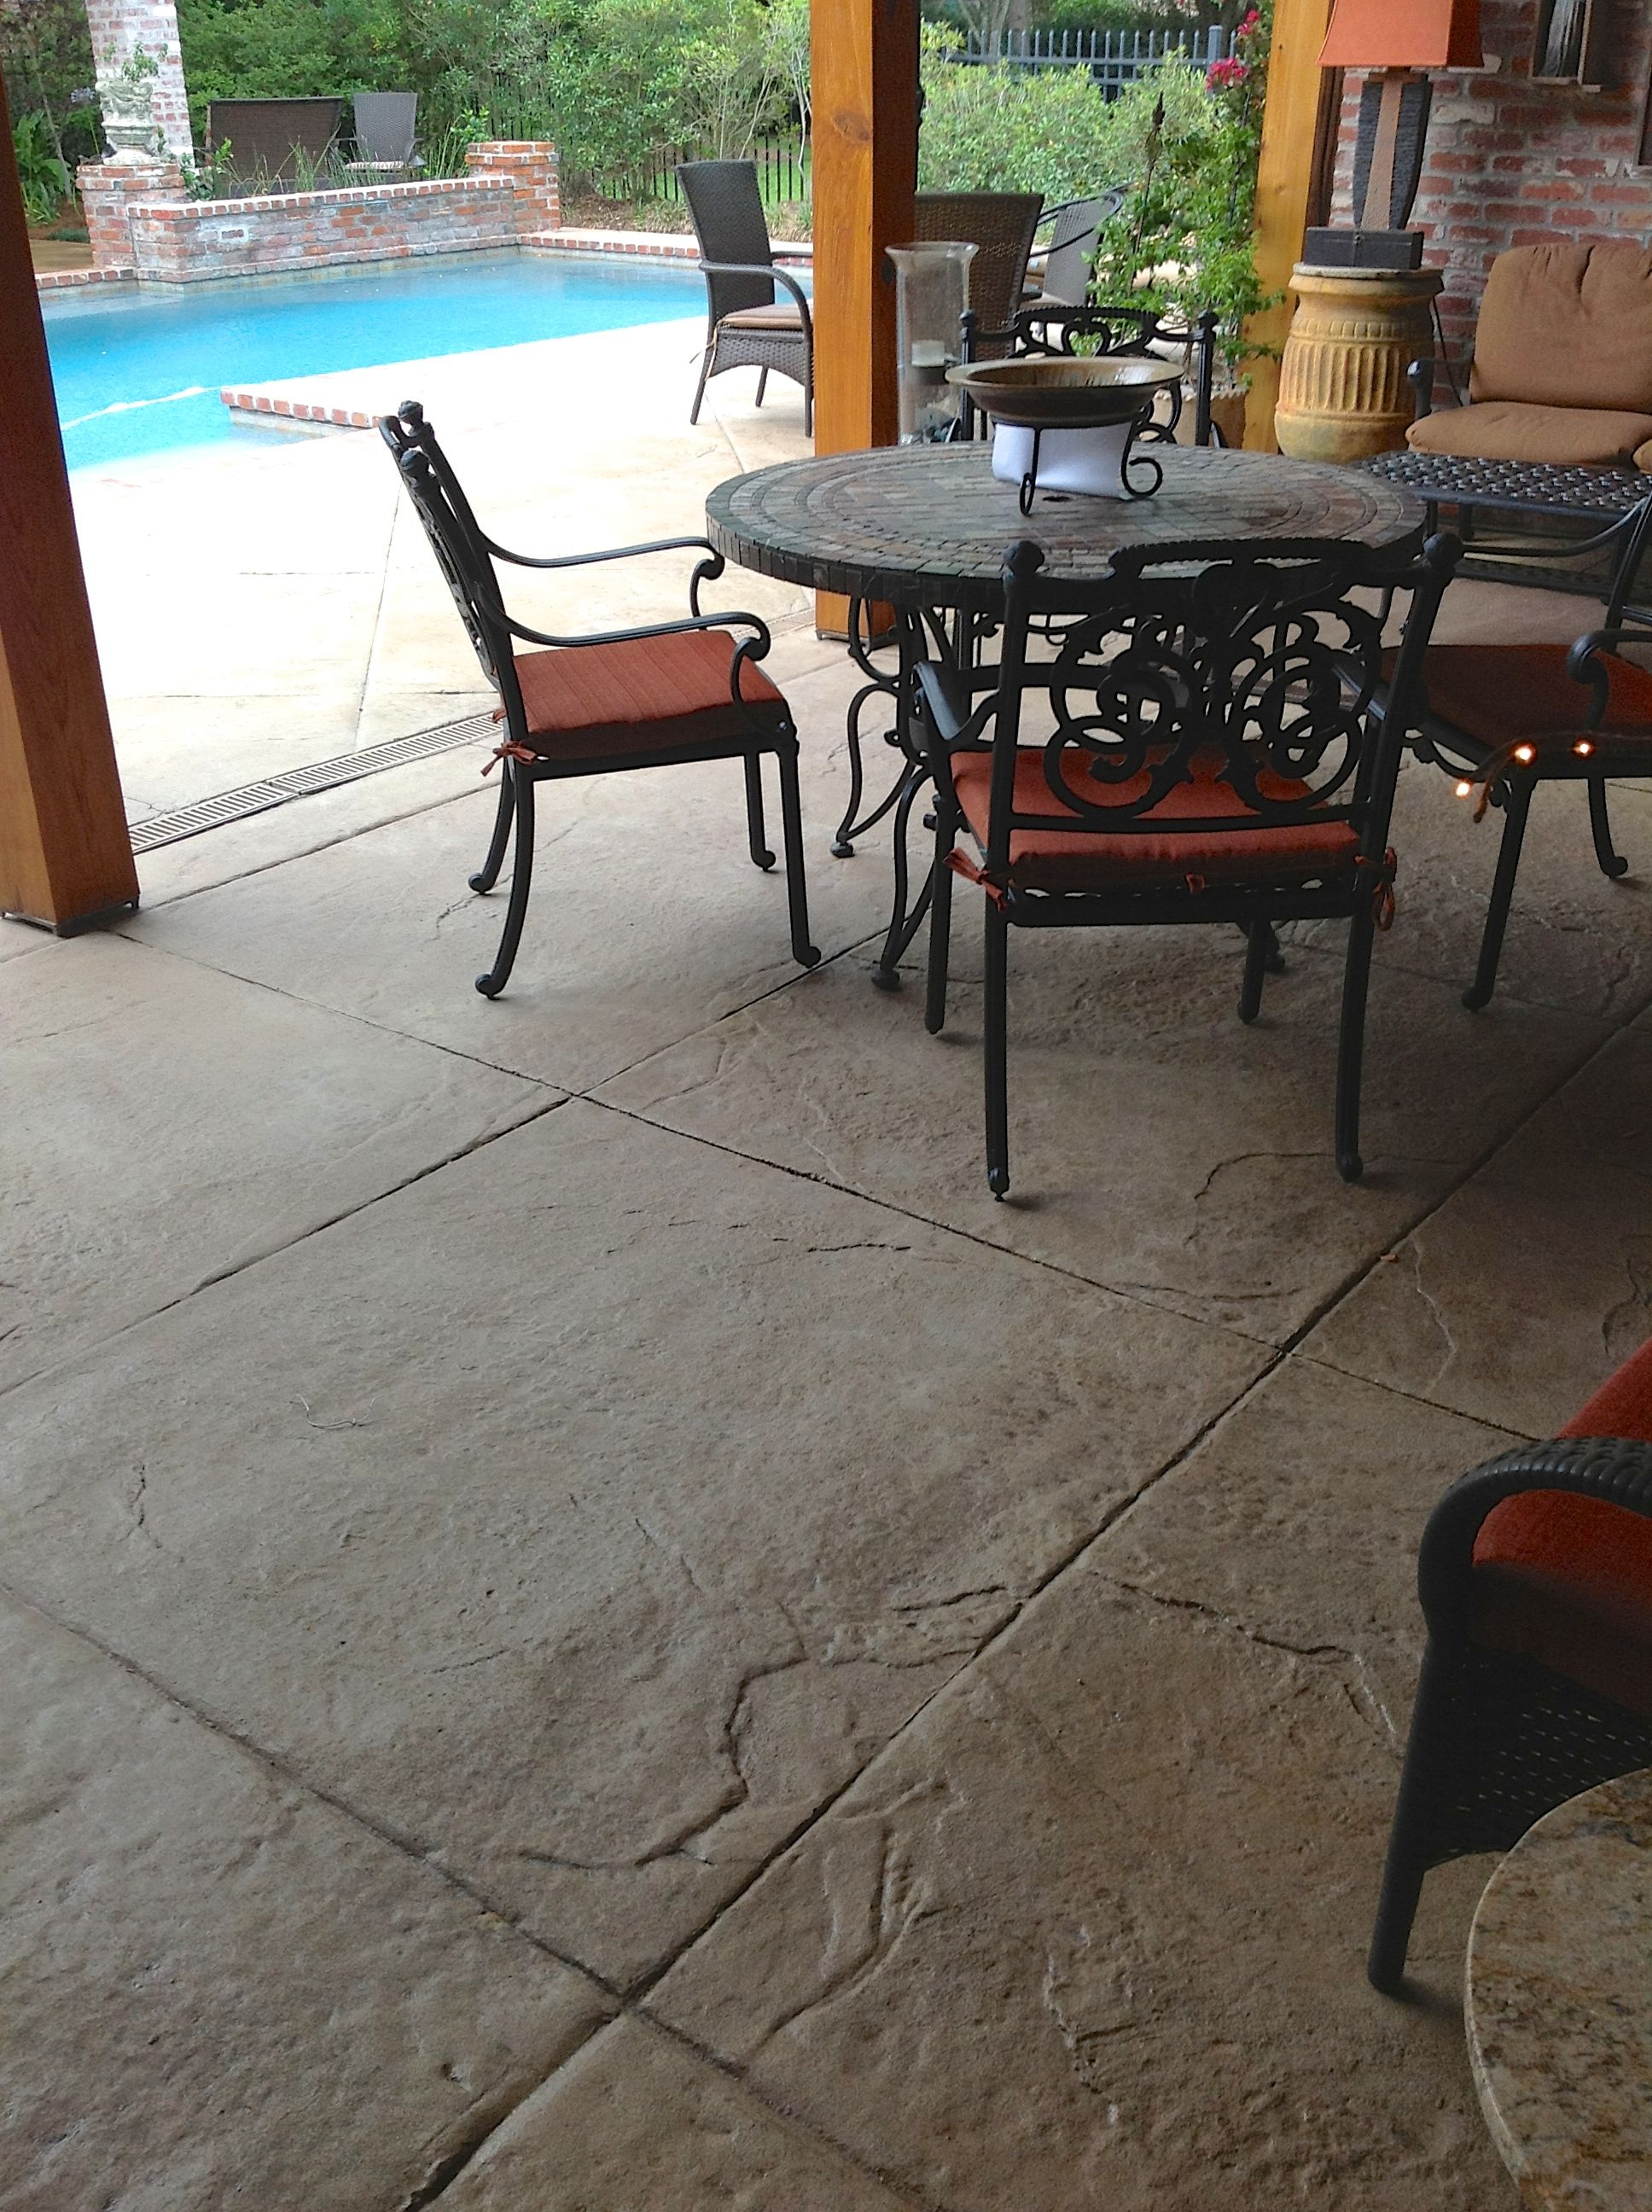 Stamped textured concrete patio area with diamond scoring pattern (1 on